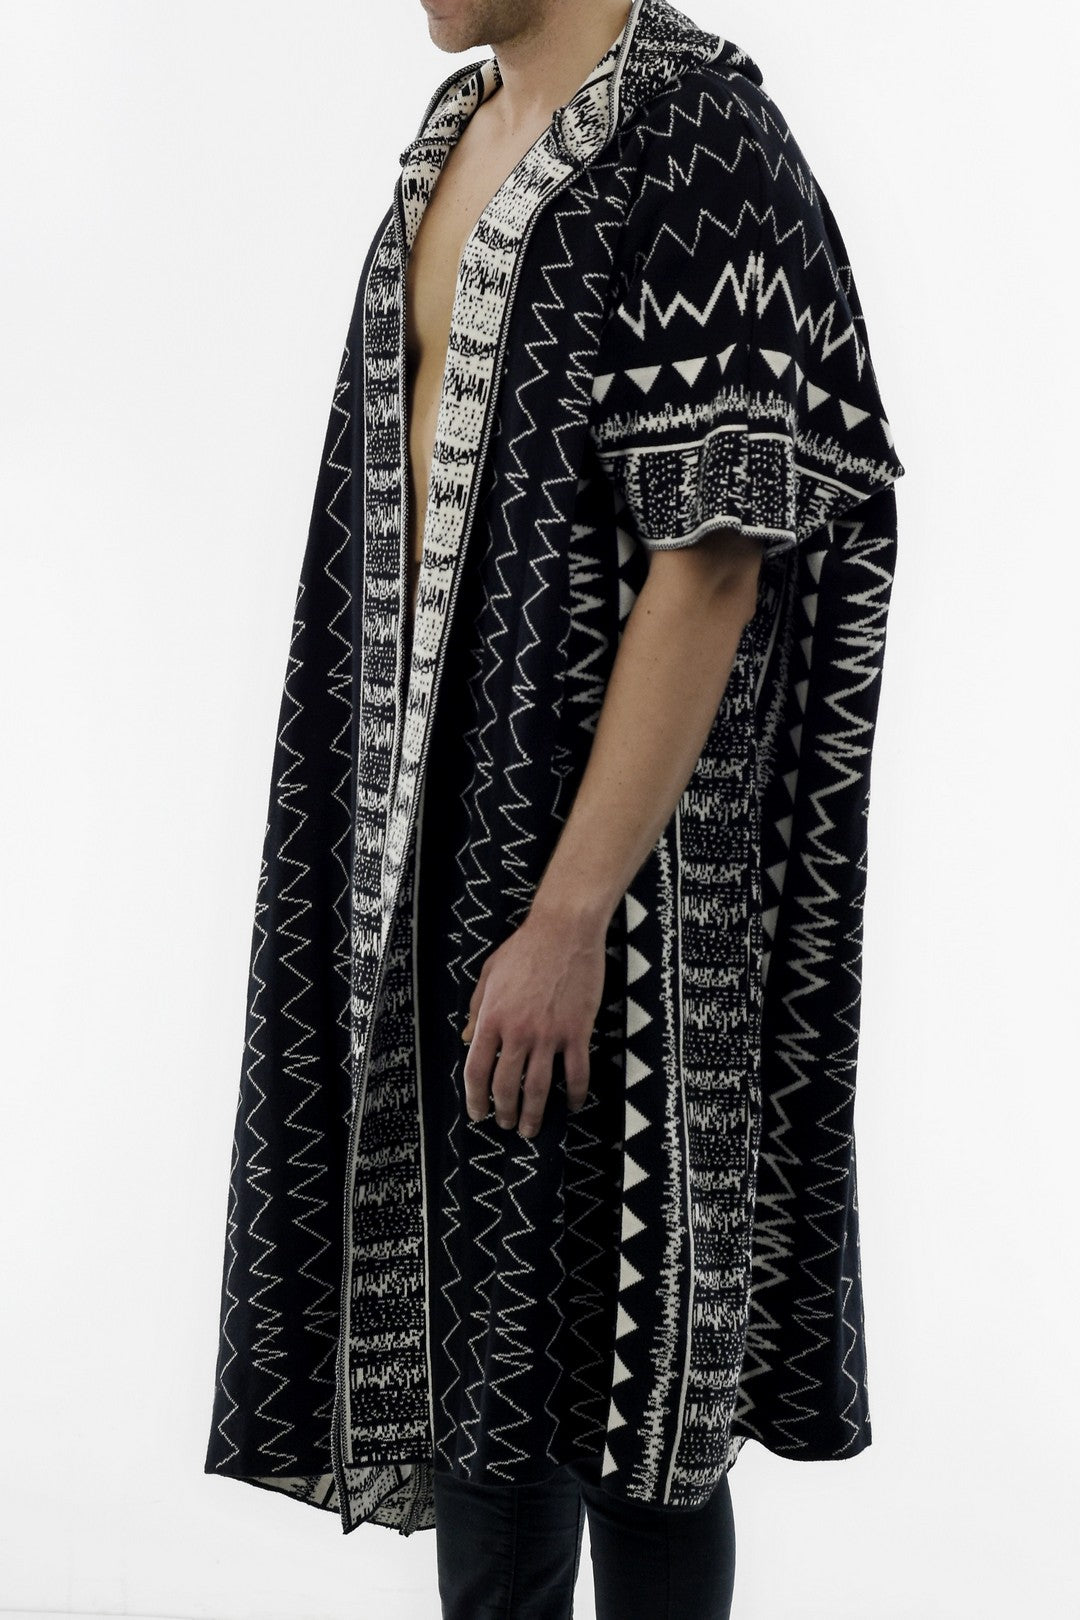 Mens Knitwear Poncho with Ethnic Jacquard Design V2 ZG5223